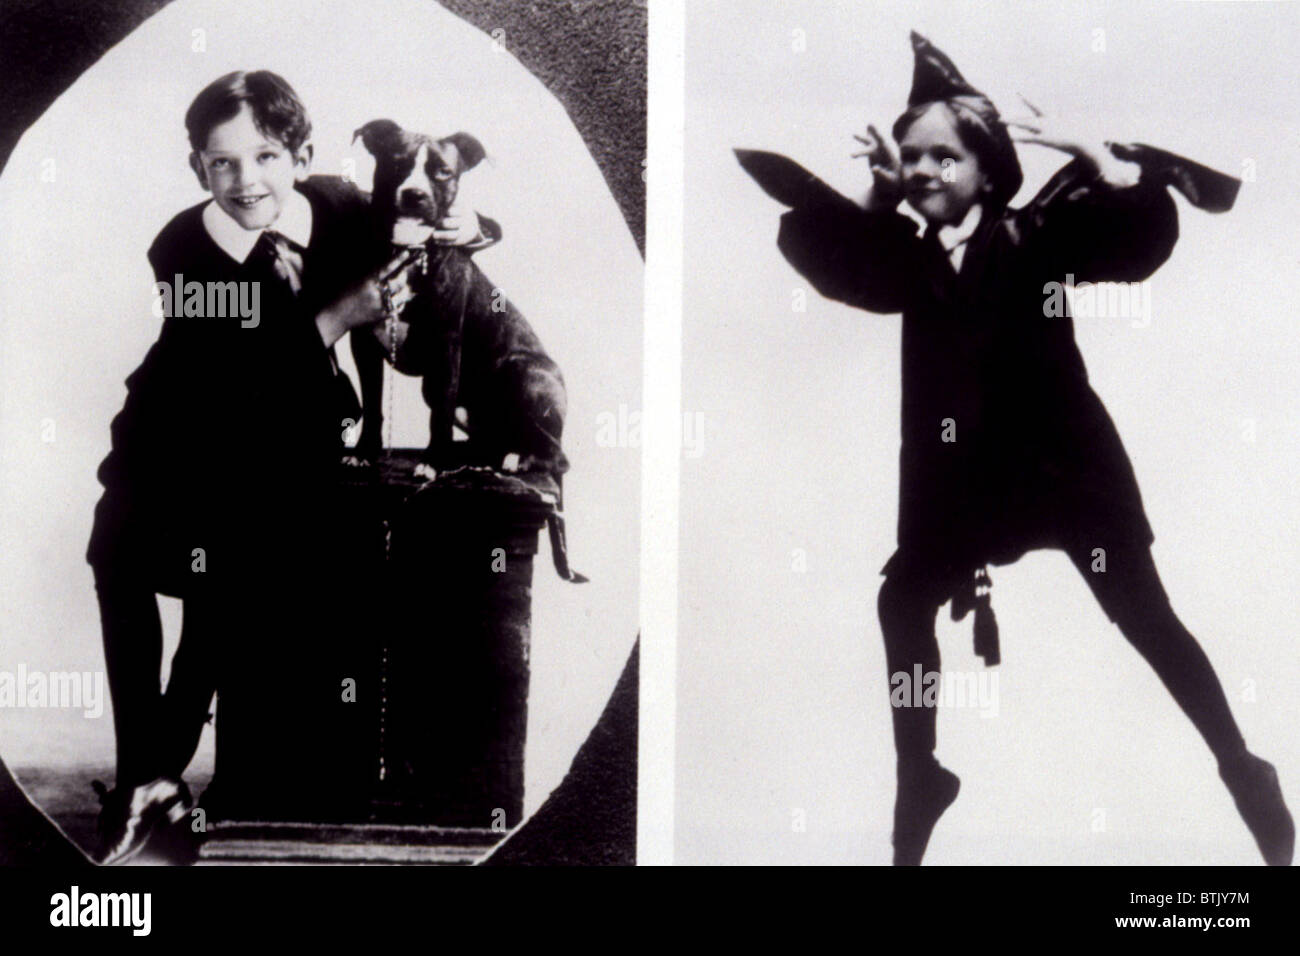 FRED ASTAIRE as a child, c. 1906 - Stock Image